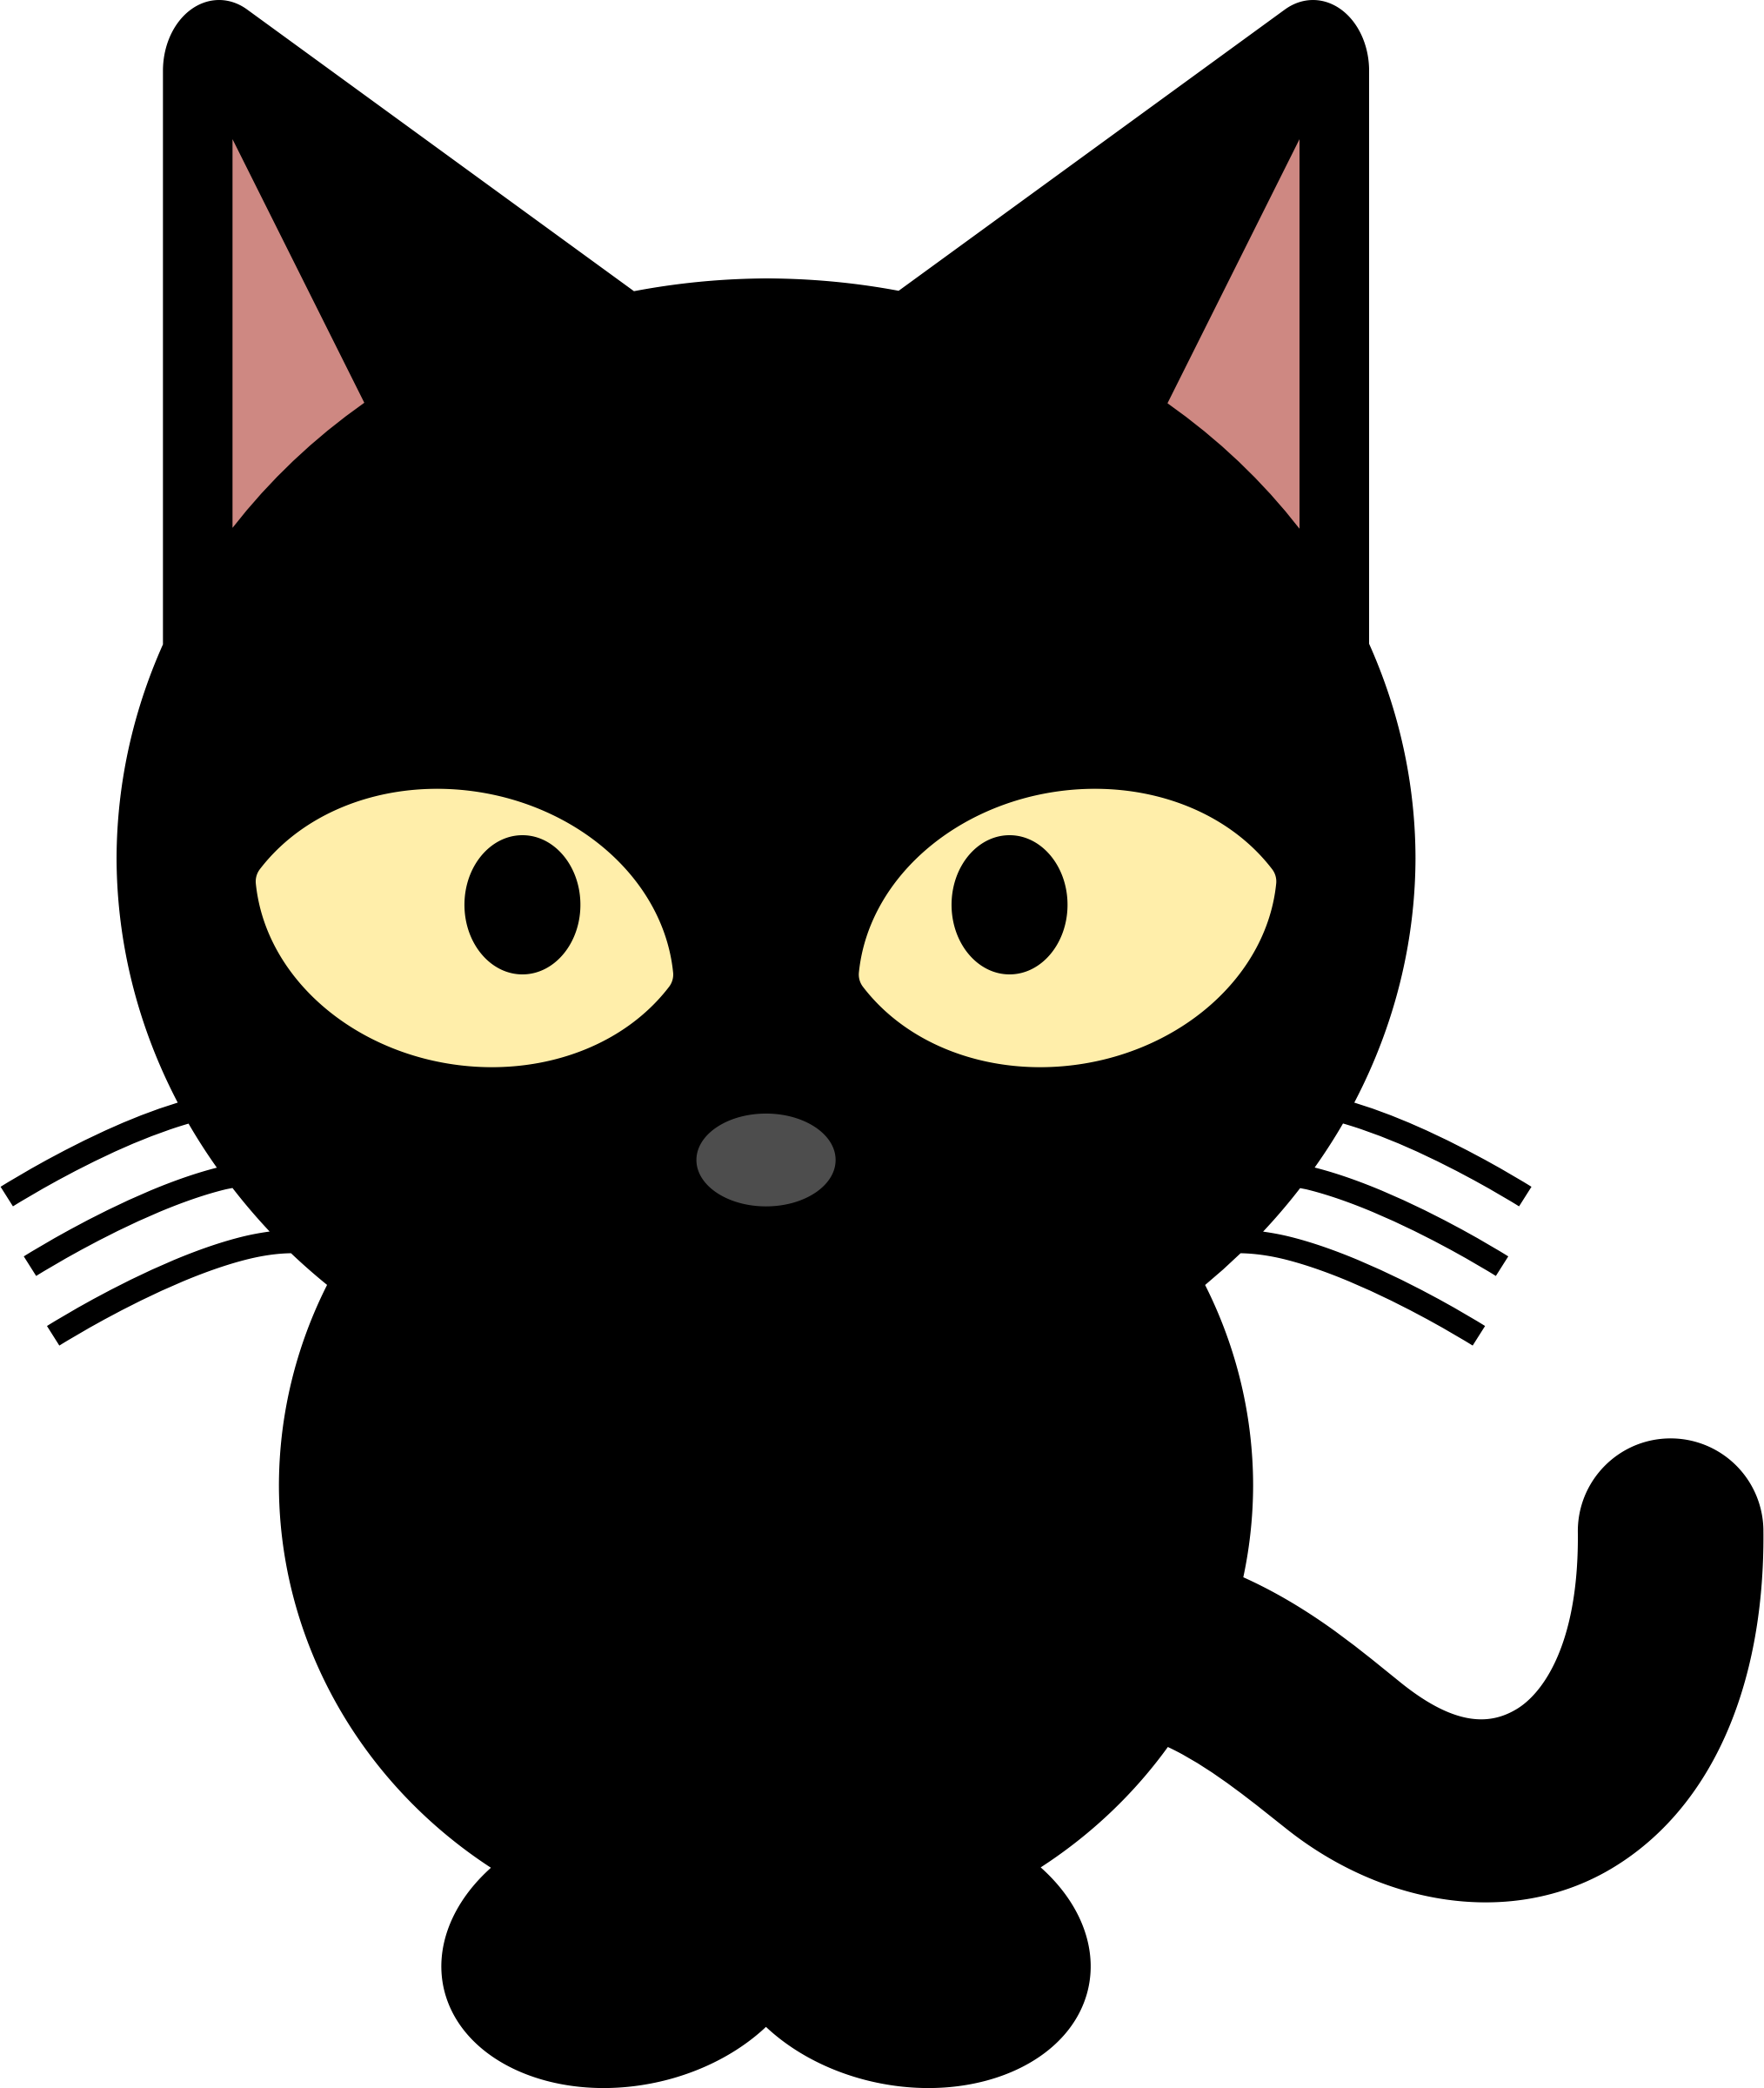 Feeding the cat clipart png Black Cat by libberry | Cricut Fun | Pinterest | Black cats, Cat and ... png